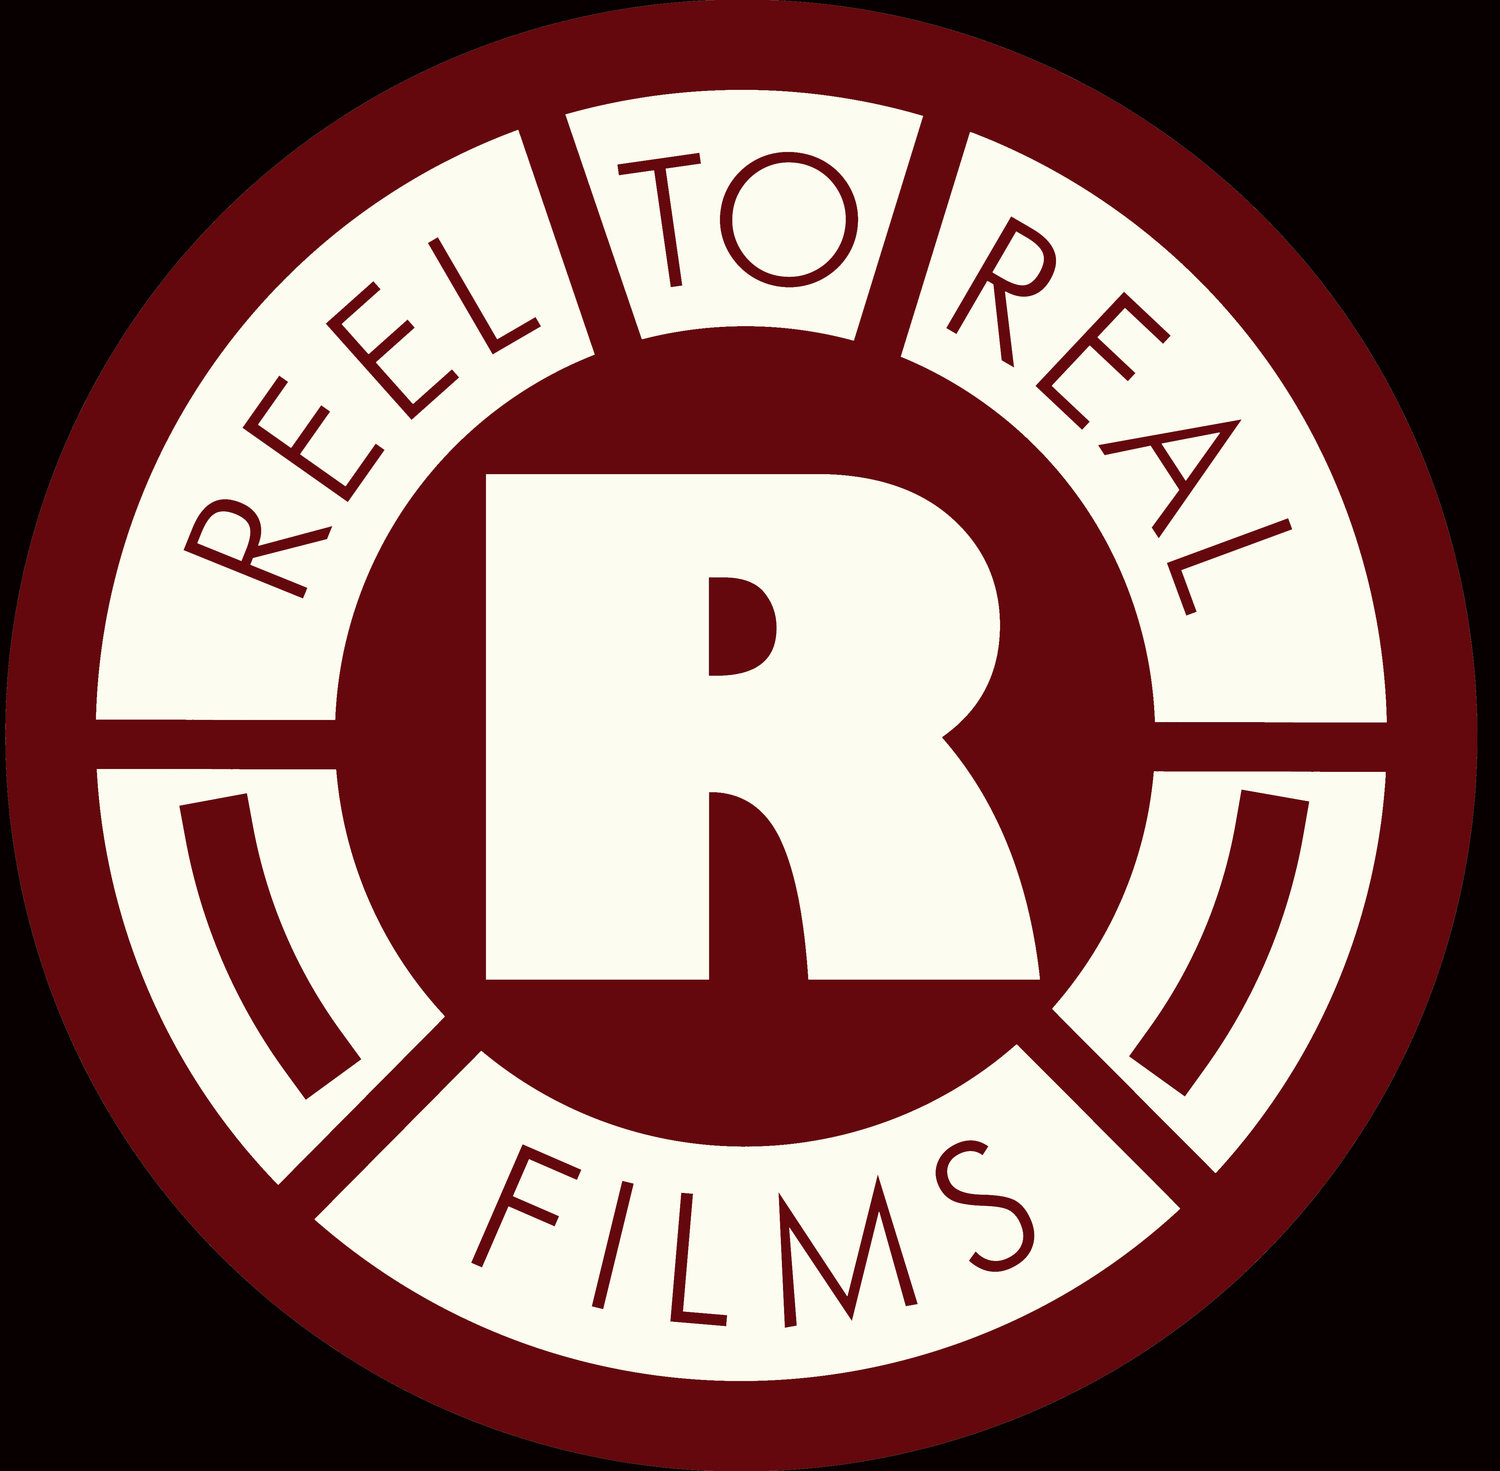 Reel To Real Films